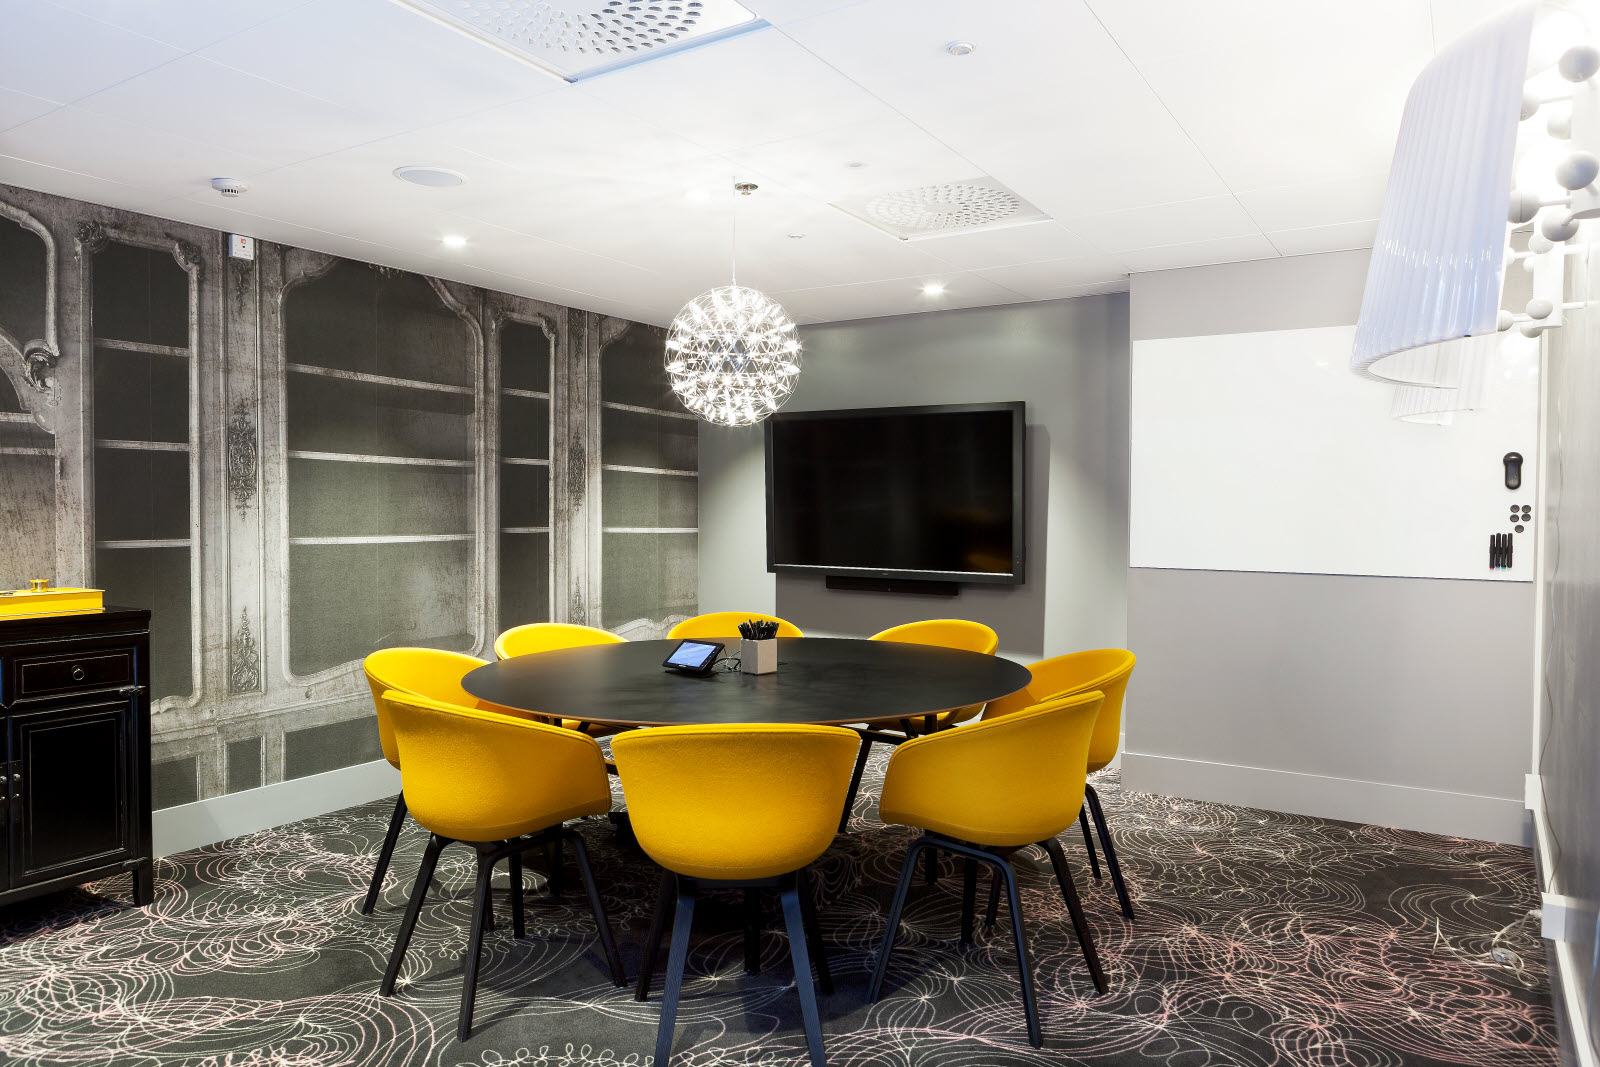 Scandic Rubinen, meeting and conference room,